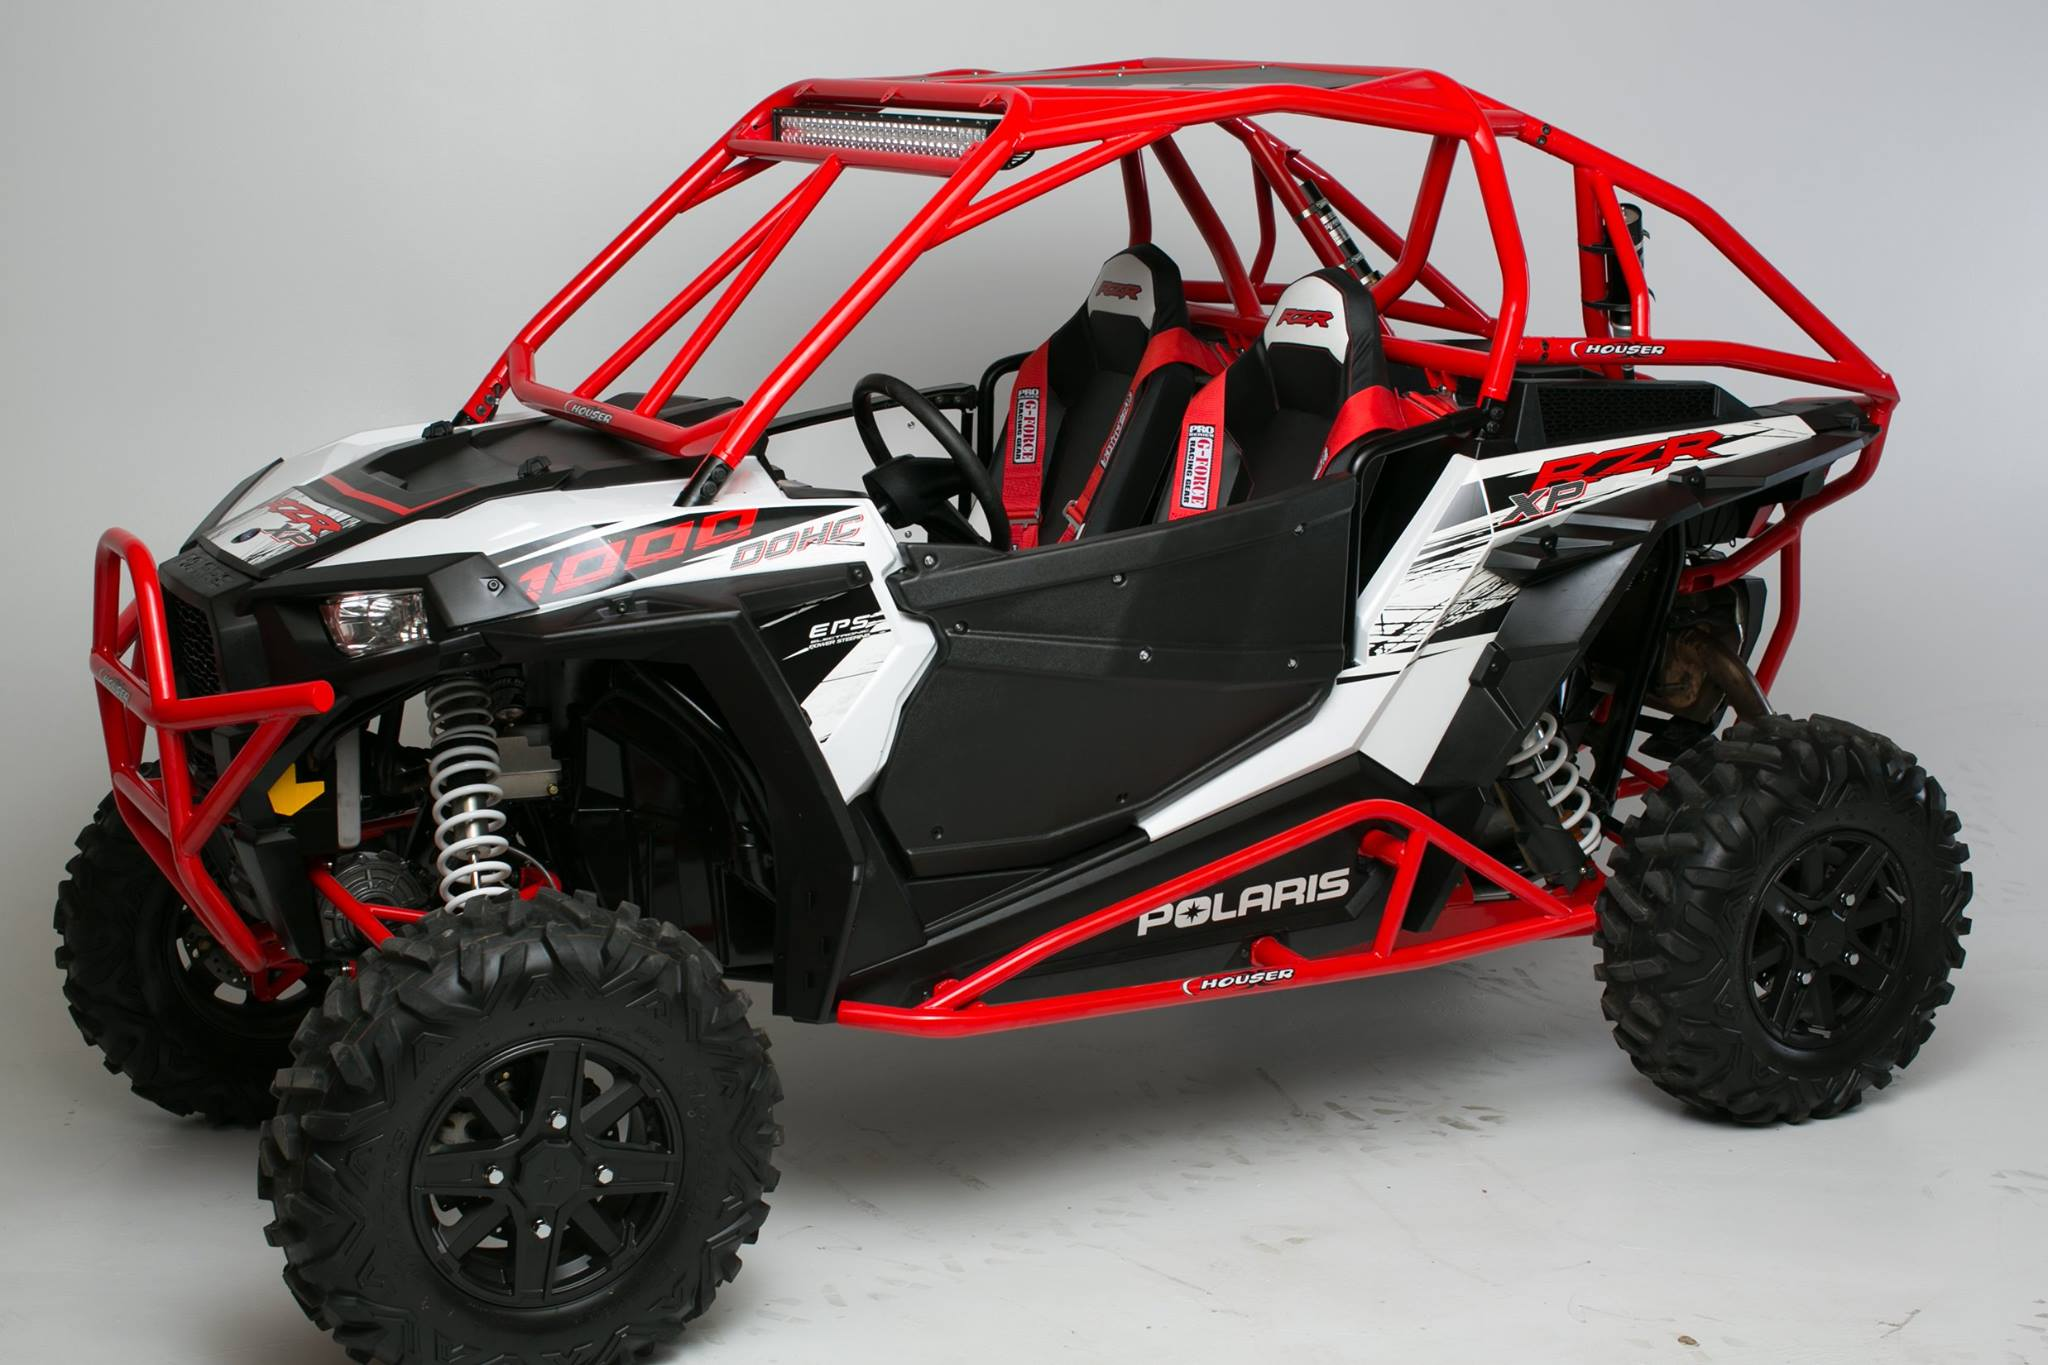 Rzr 1000 Dimensions >> Shopping for a Full Cage - Polaris RZR Forum - RZR Forums.net